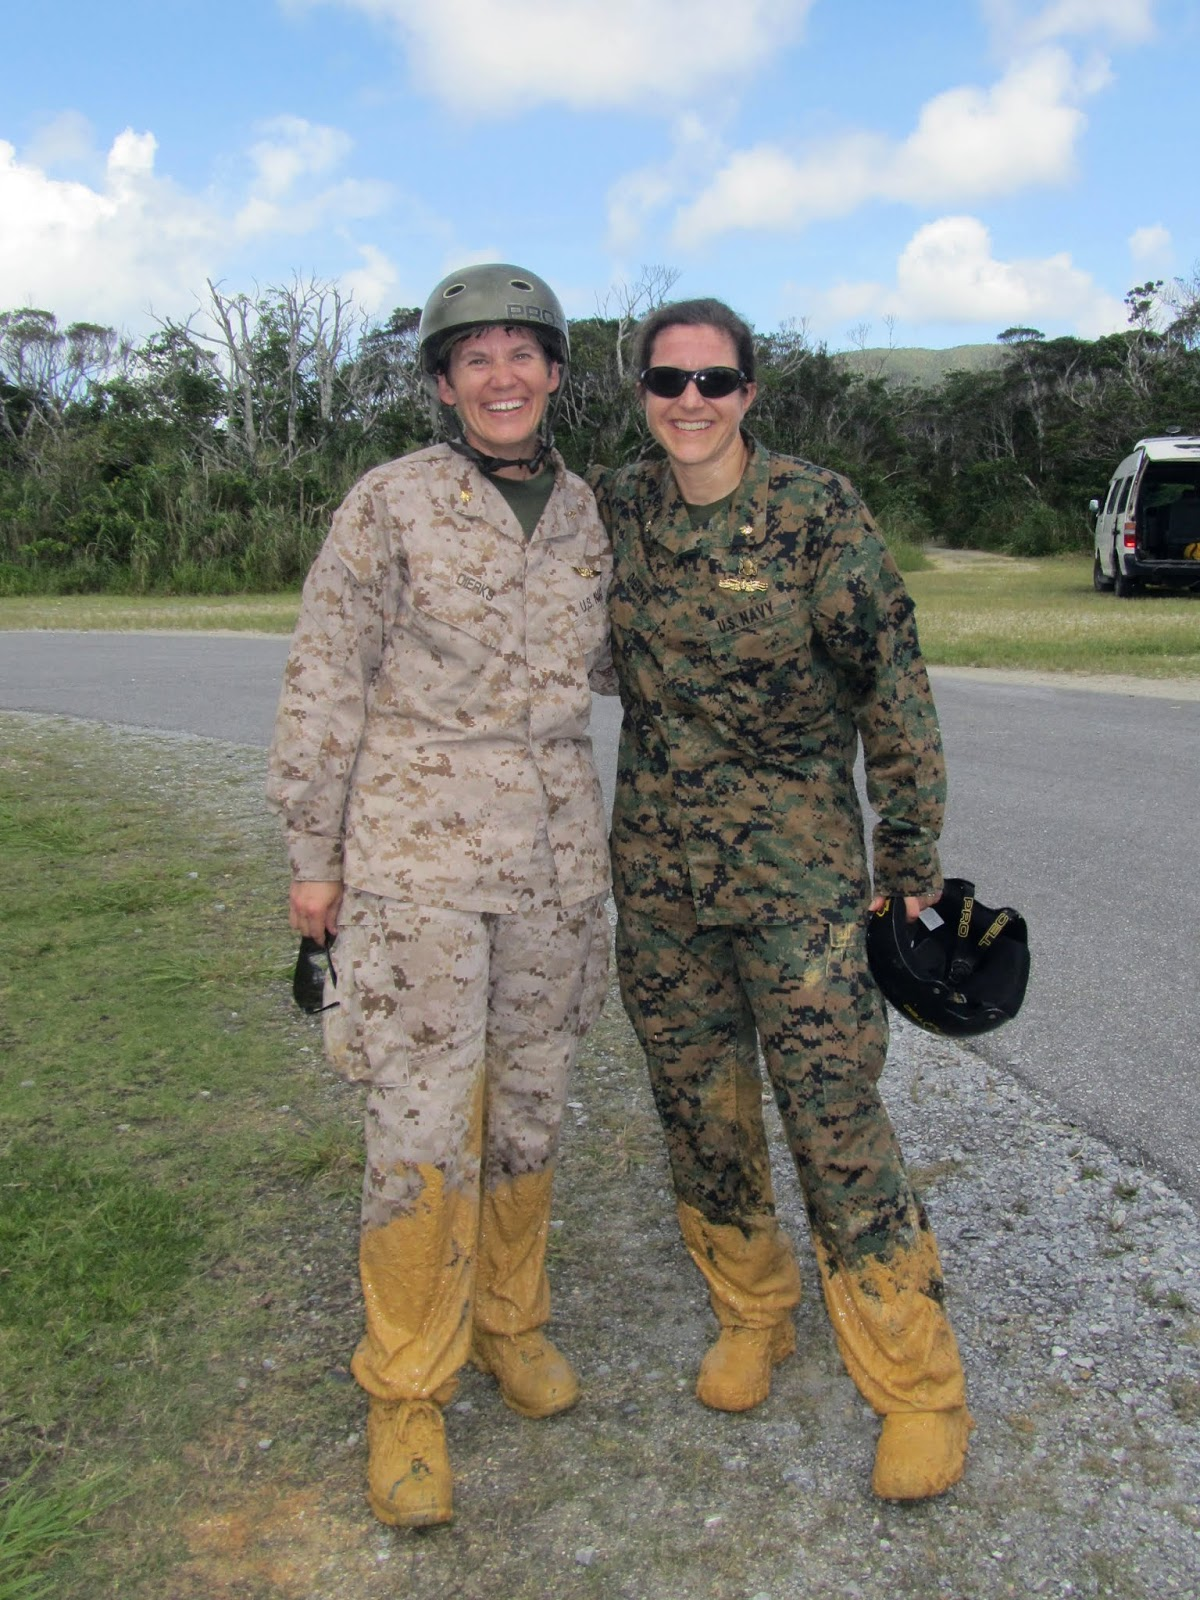 Two women in military uniform with mud up to their knees pose for a photo